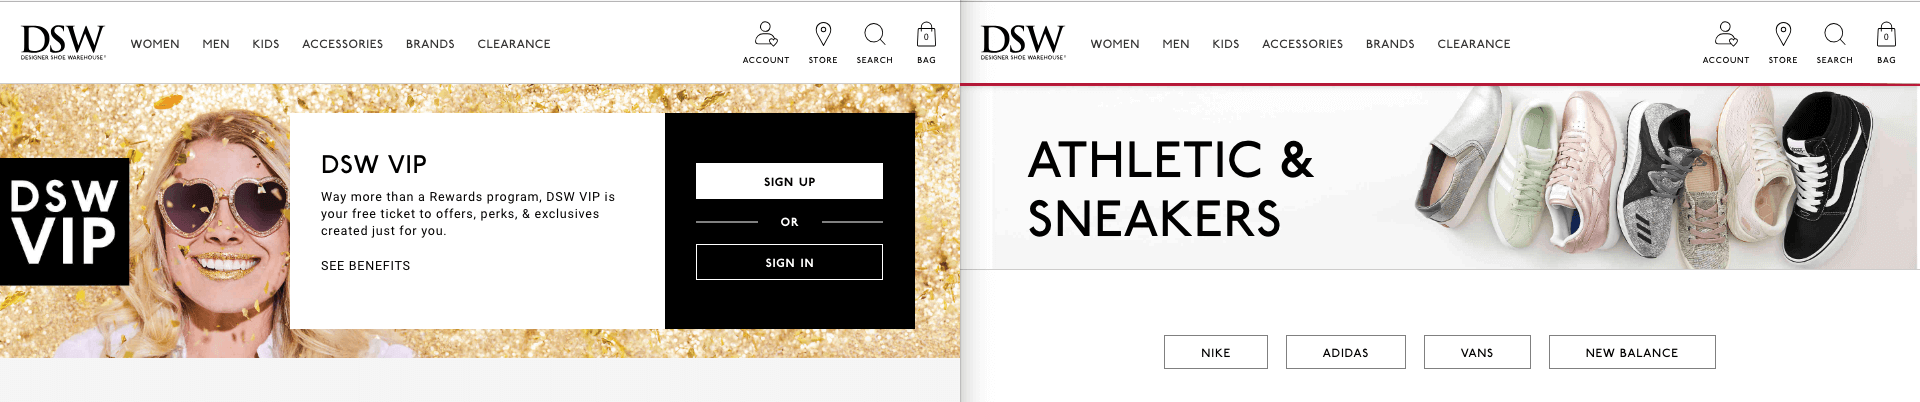 Designer Shoe Warehouse DSW Website banner image comparison gold and pastel